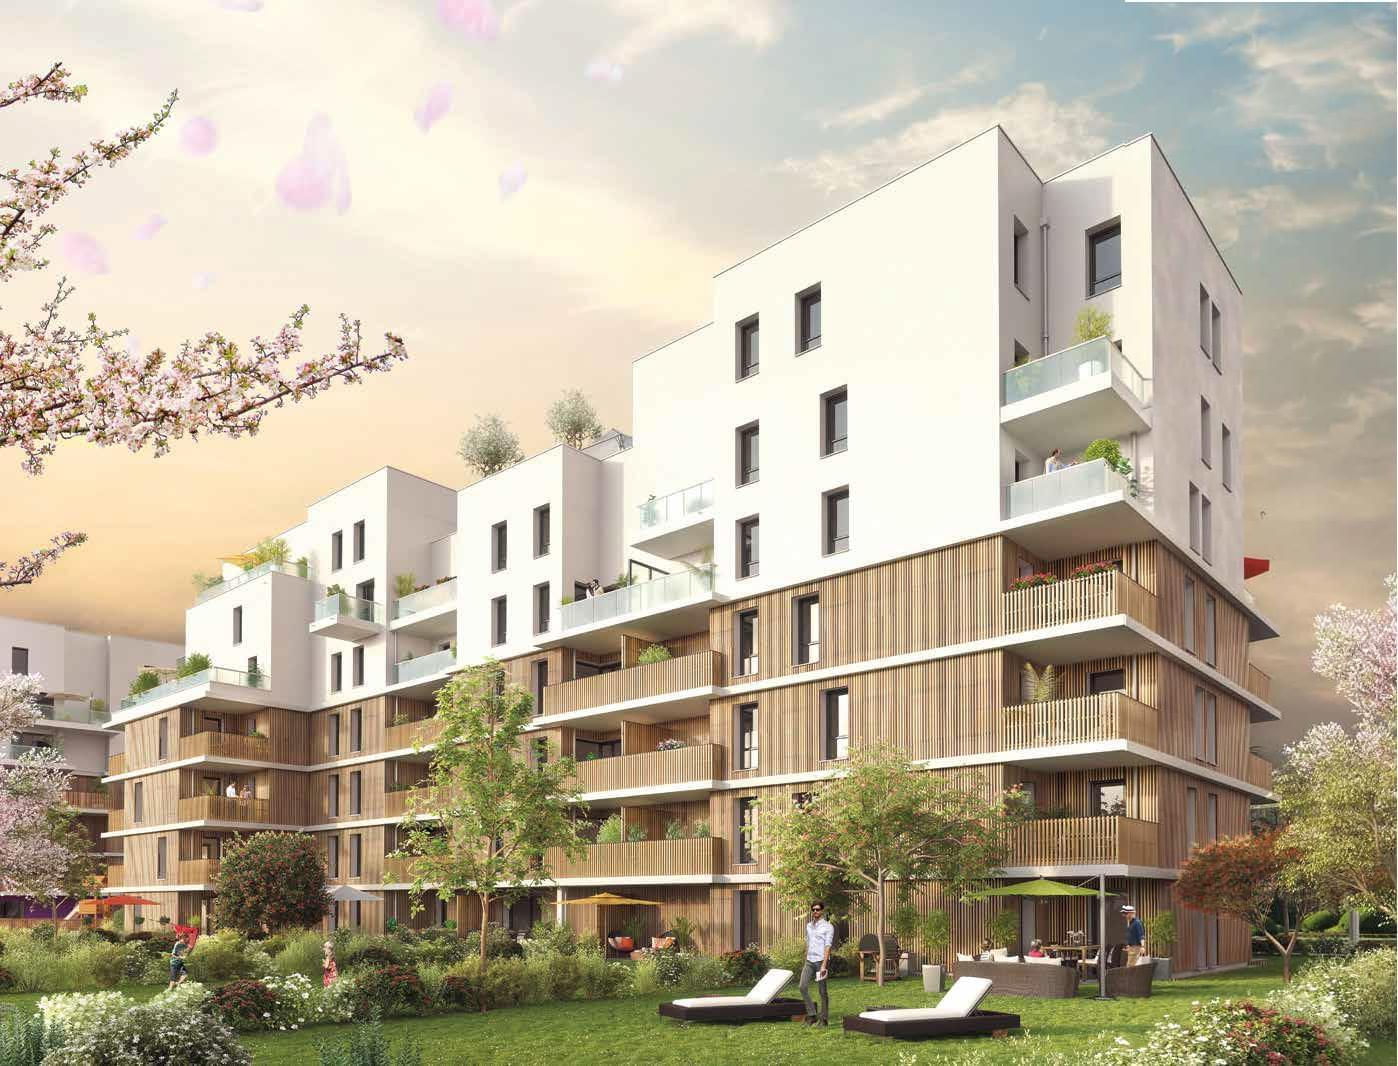 Immobilier neuf ambilly proche suisse dispo 2017 sakura for Programme immobilier neuf 2017